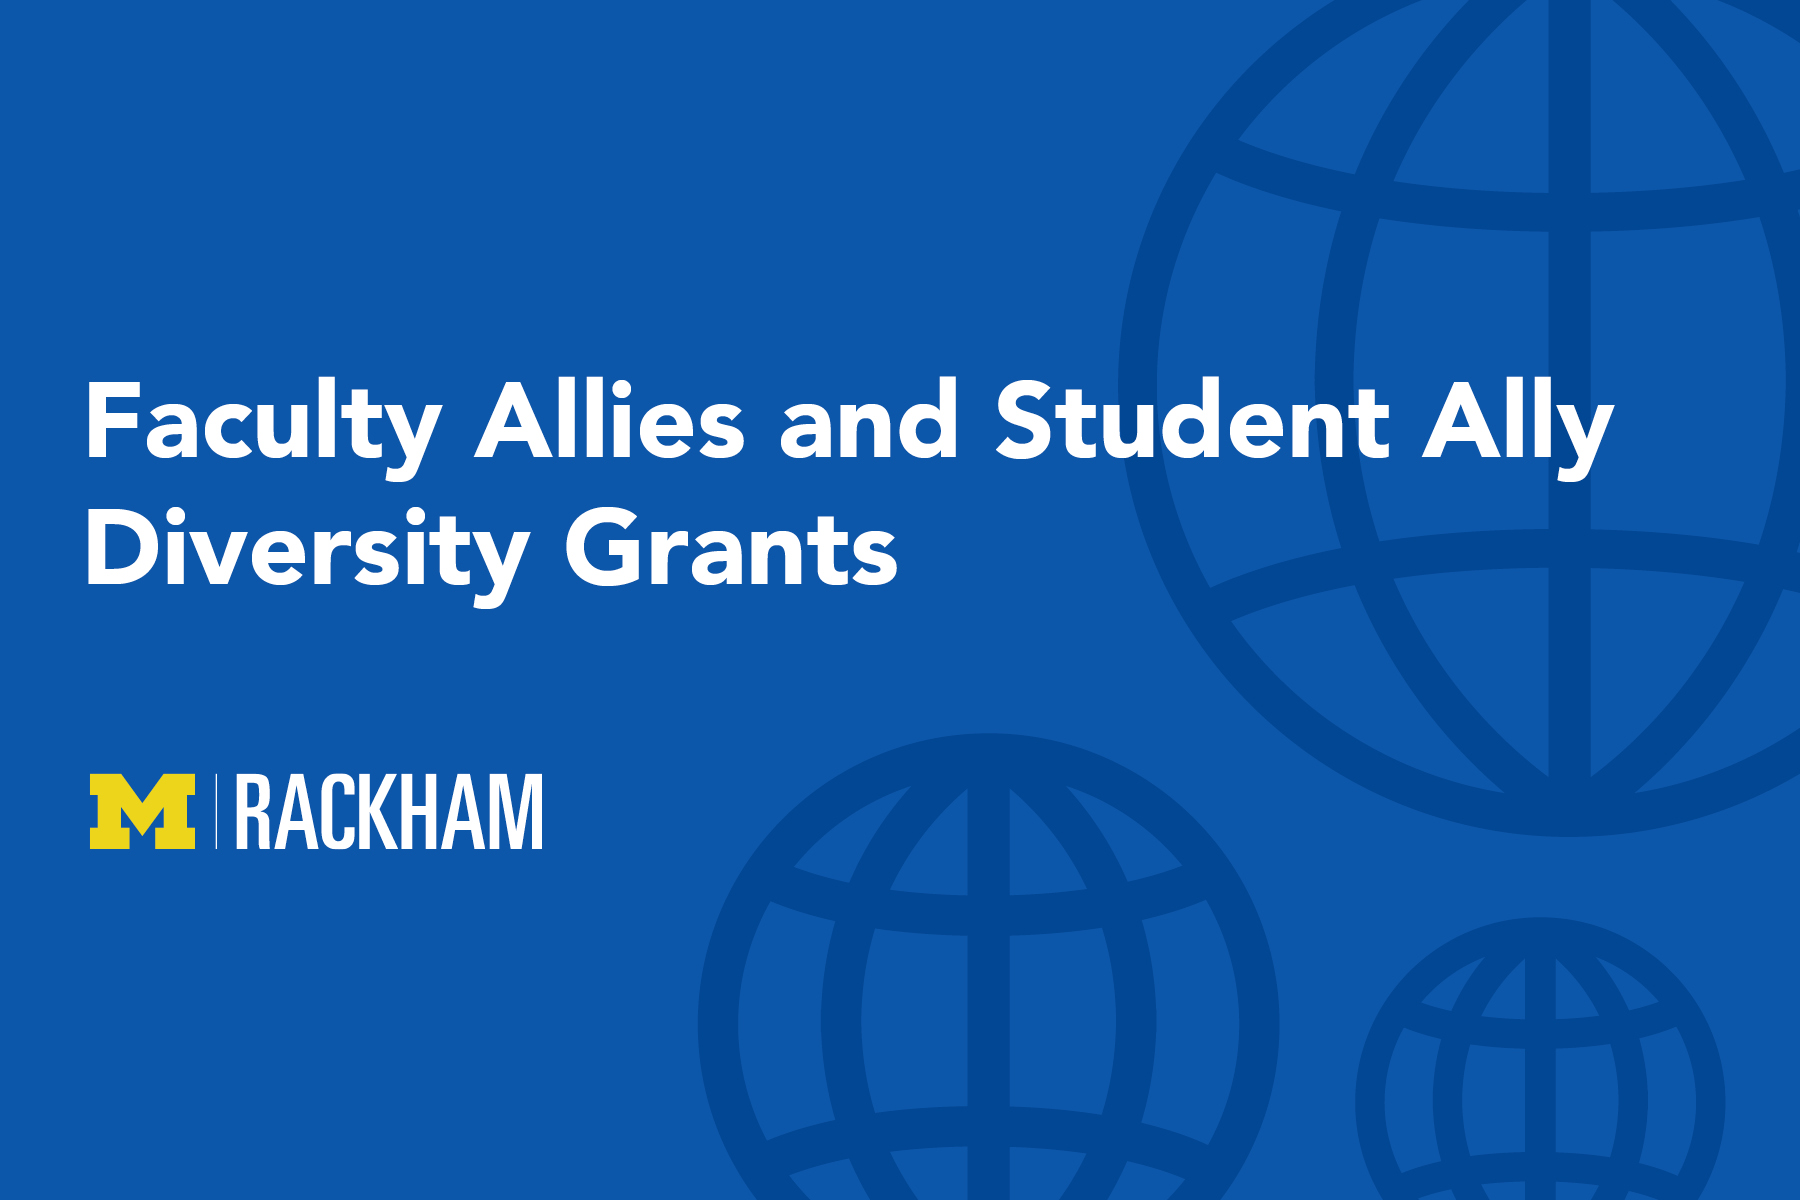 Faculty Allies and Student Ally Diversity Grants Open for Applications